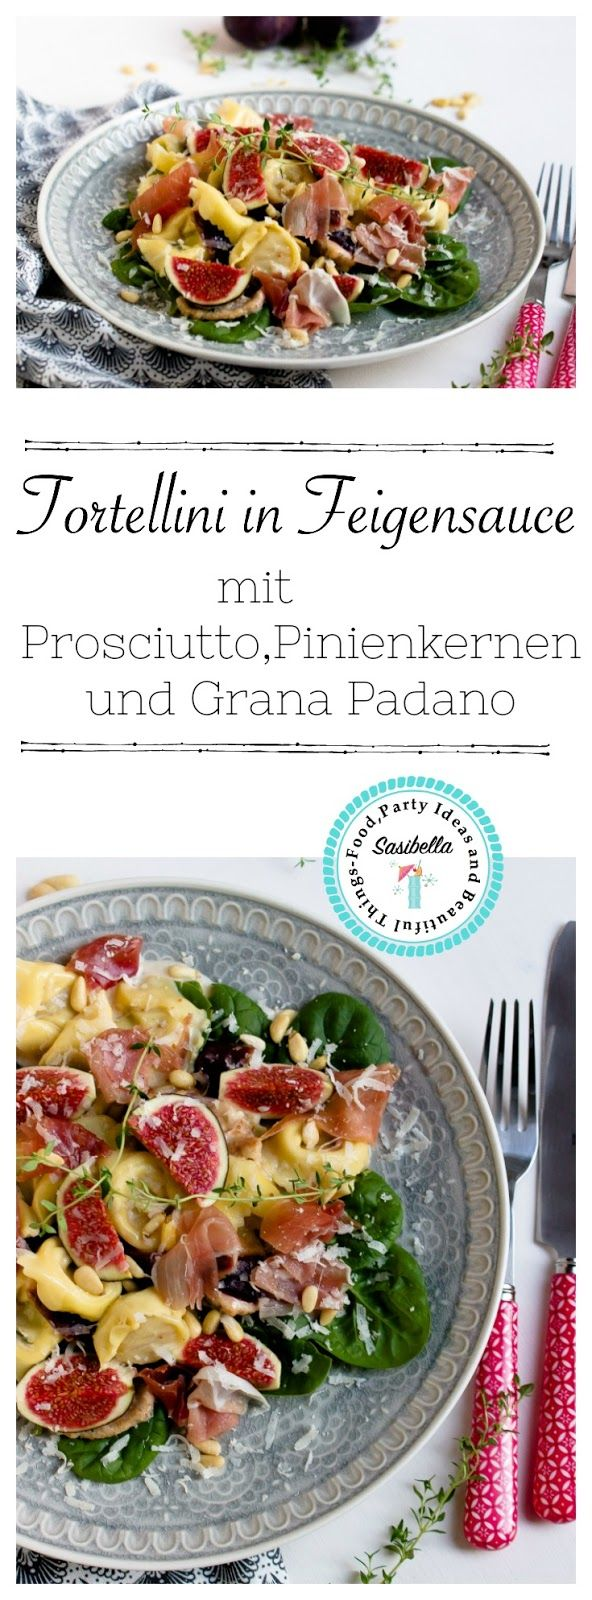 tortellini in feigensauce mit prosciutto grana padano und. Black Bedroom Furniture Sets. Home Design Ideas